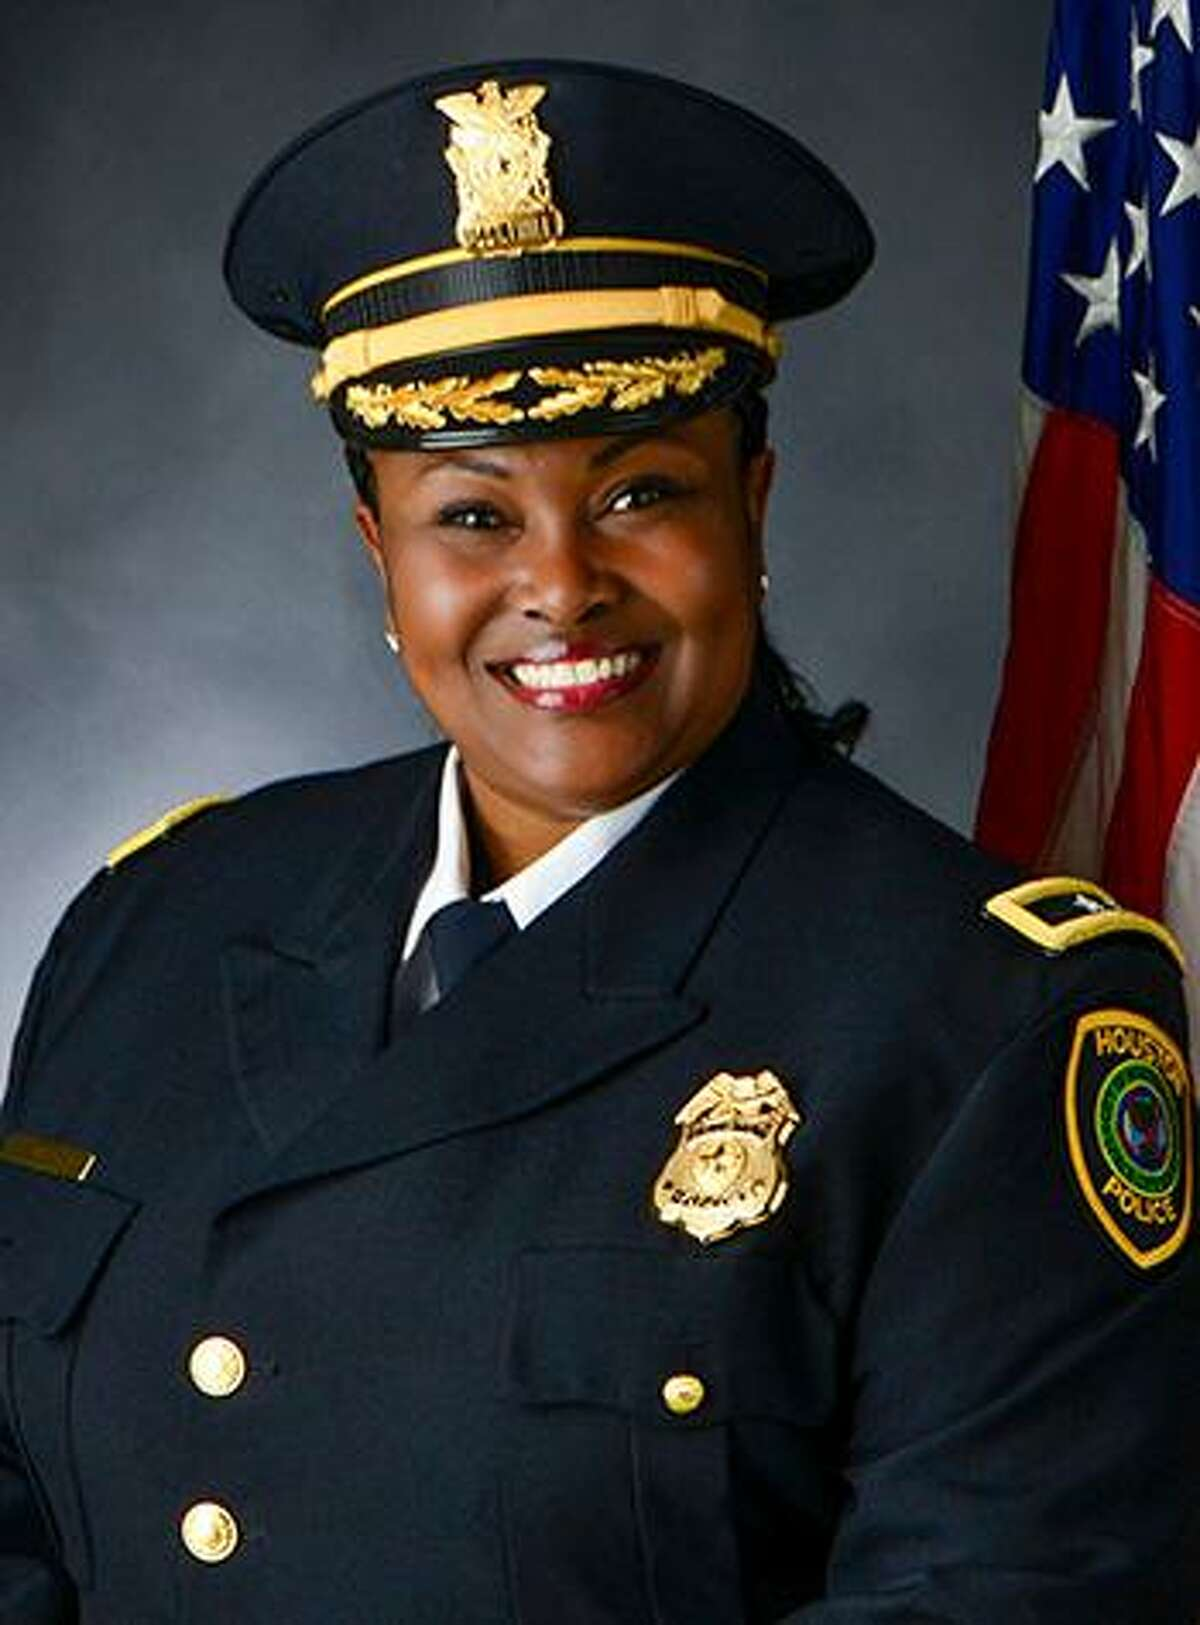 Houston Police Assistant Chief Sheryl Victorian has been selected to lead the Waco Police Department.